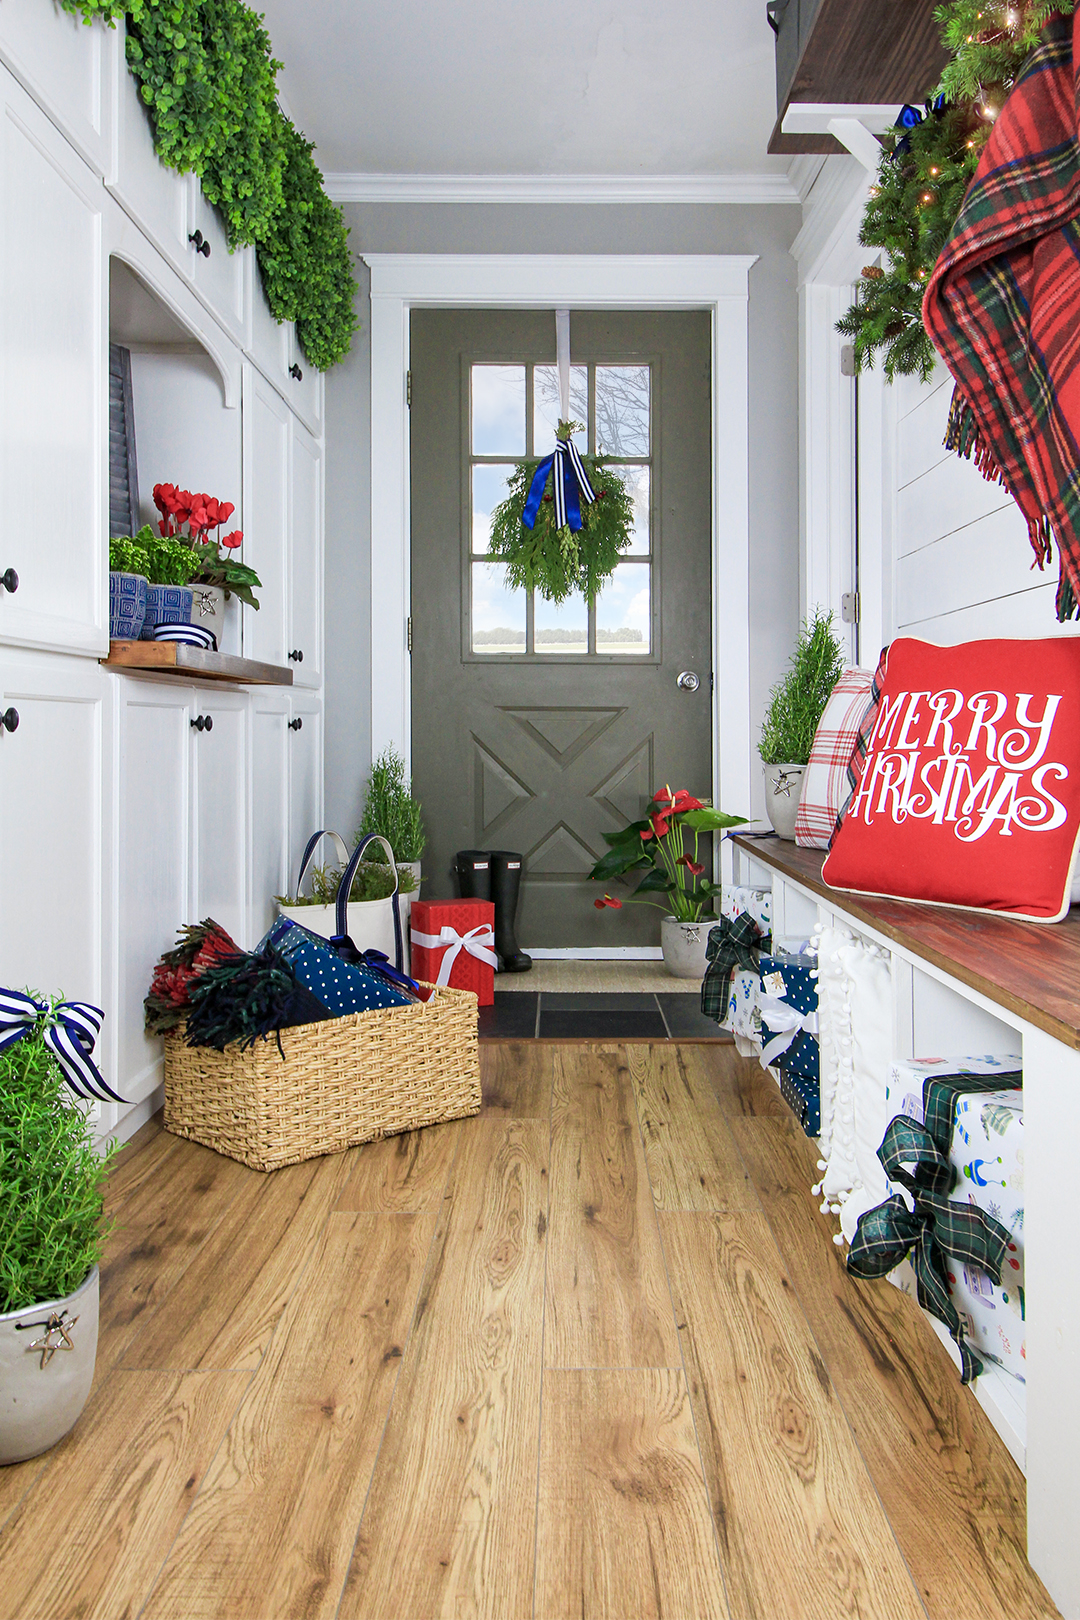 Christmas Home Tour 2019: Mud Room